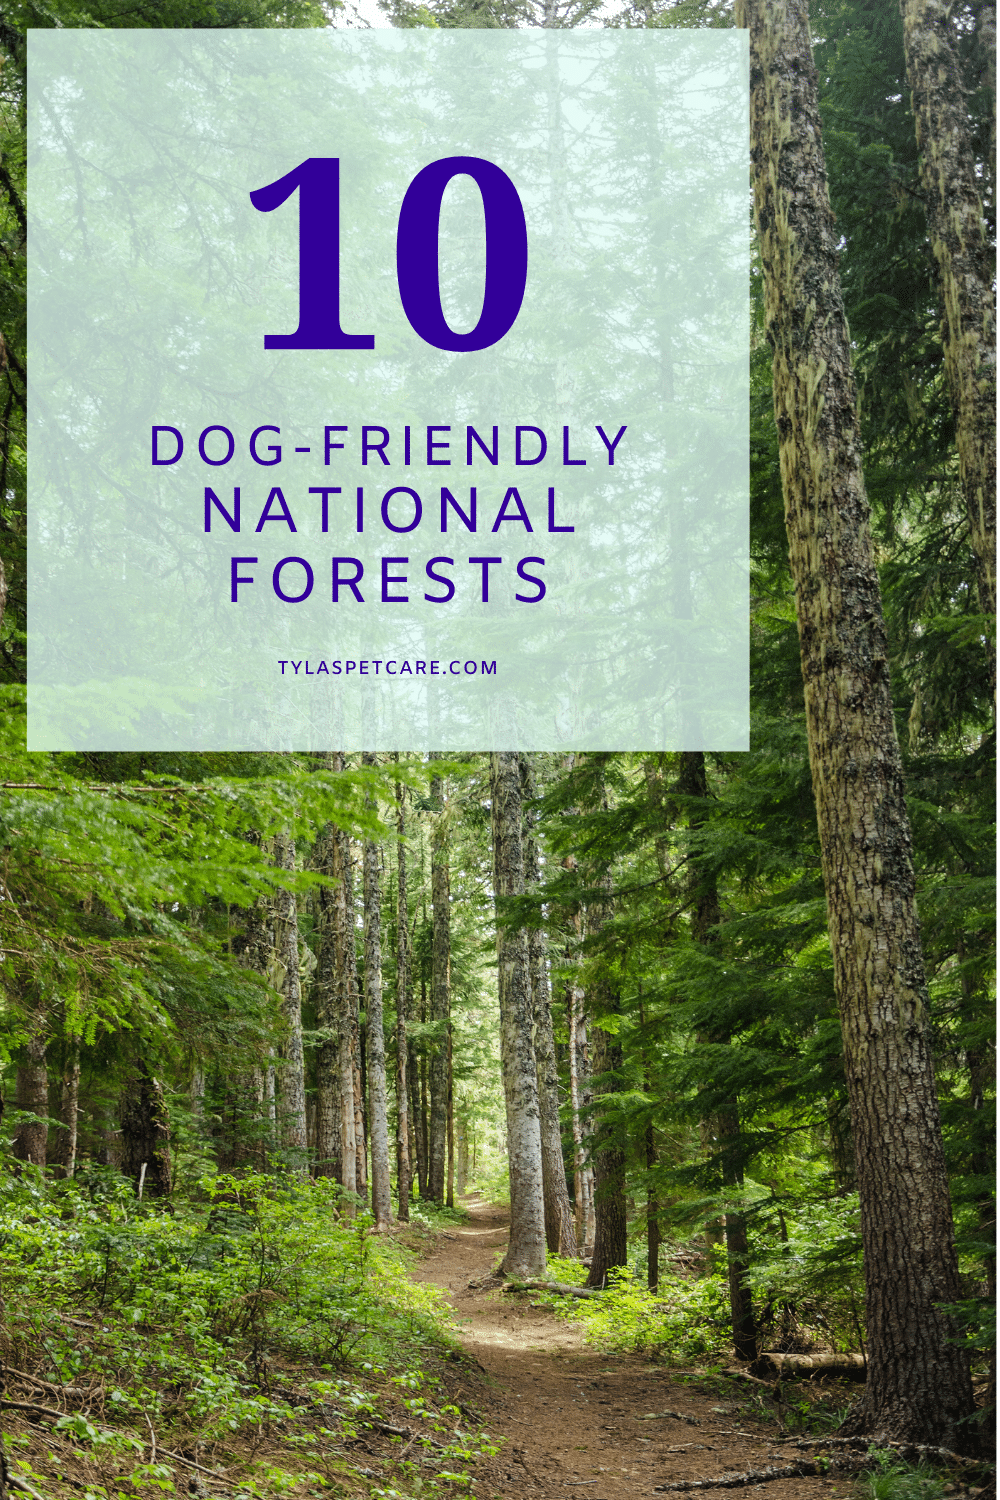 10 dog-friendly national forests